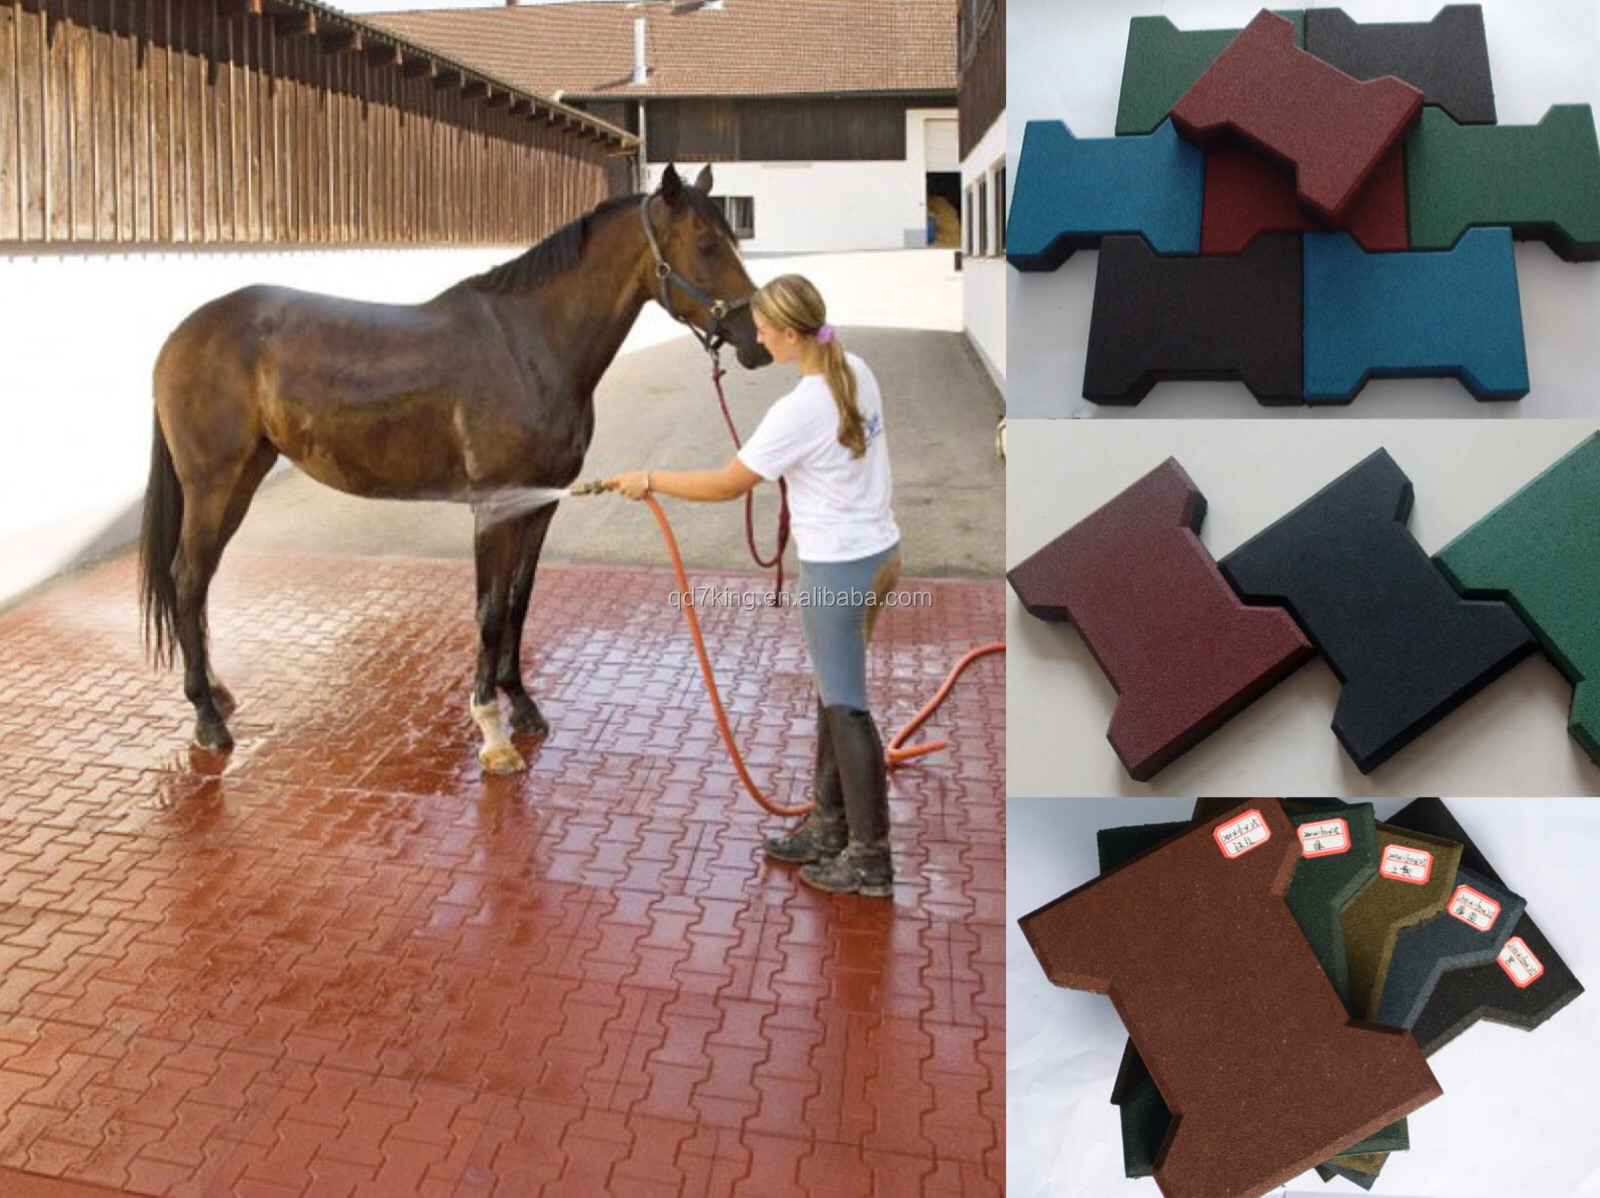 Animal Farm cheap horse stall mats for sale